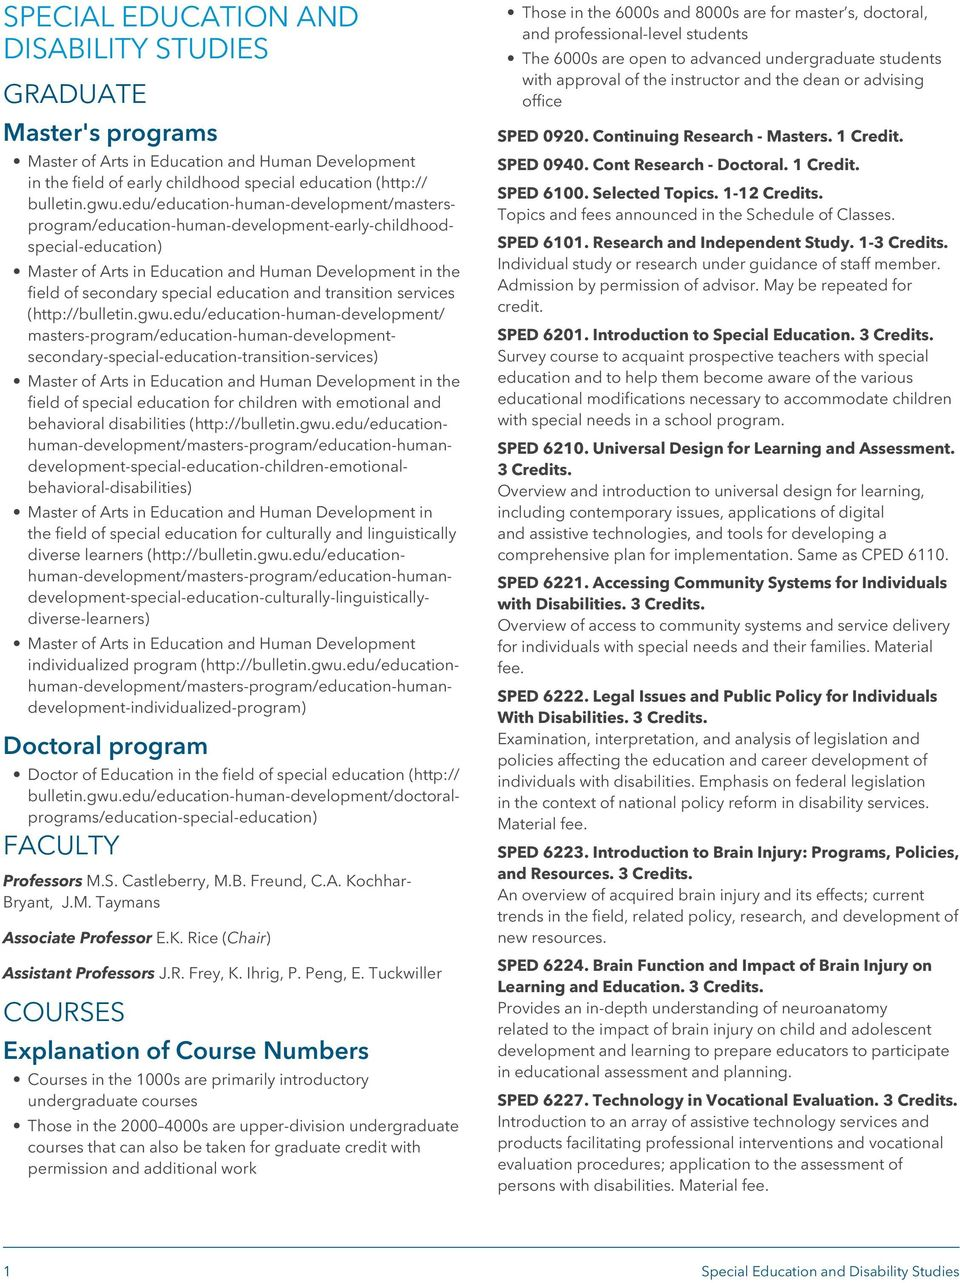 education and transition services (http://bulletin.gwu.